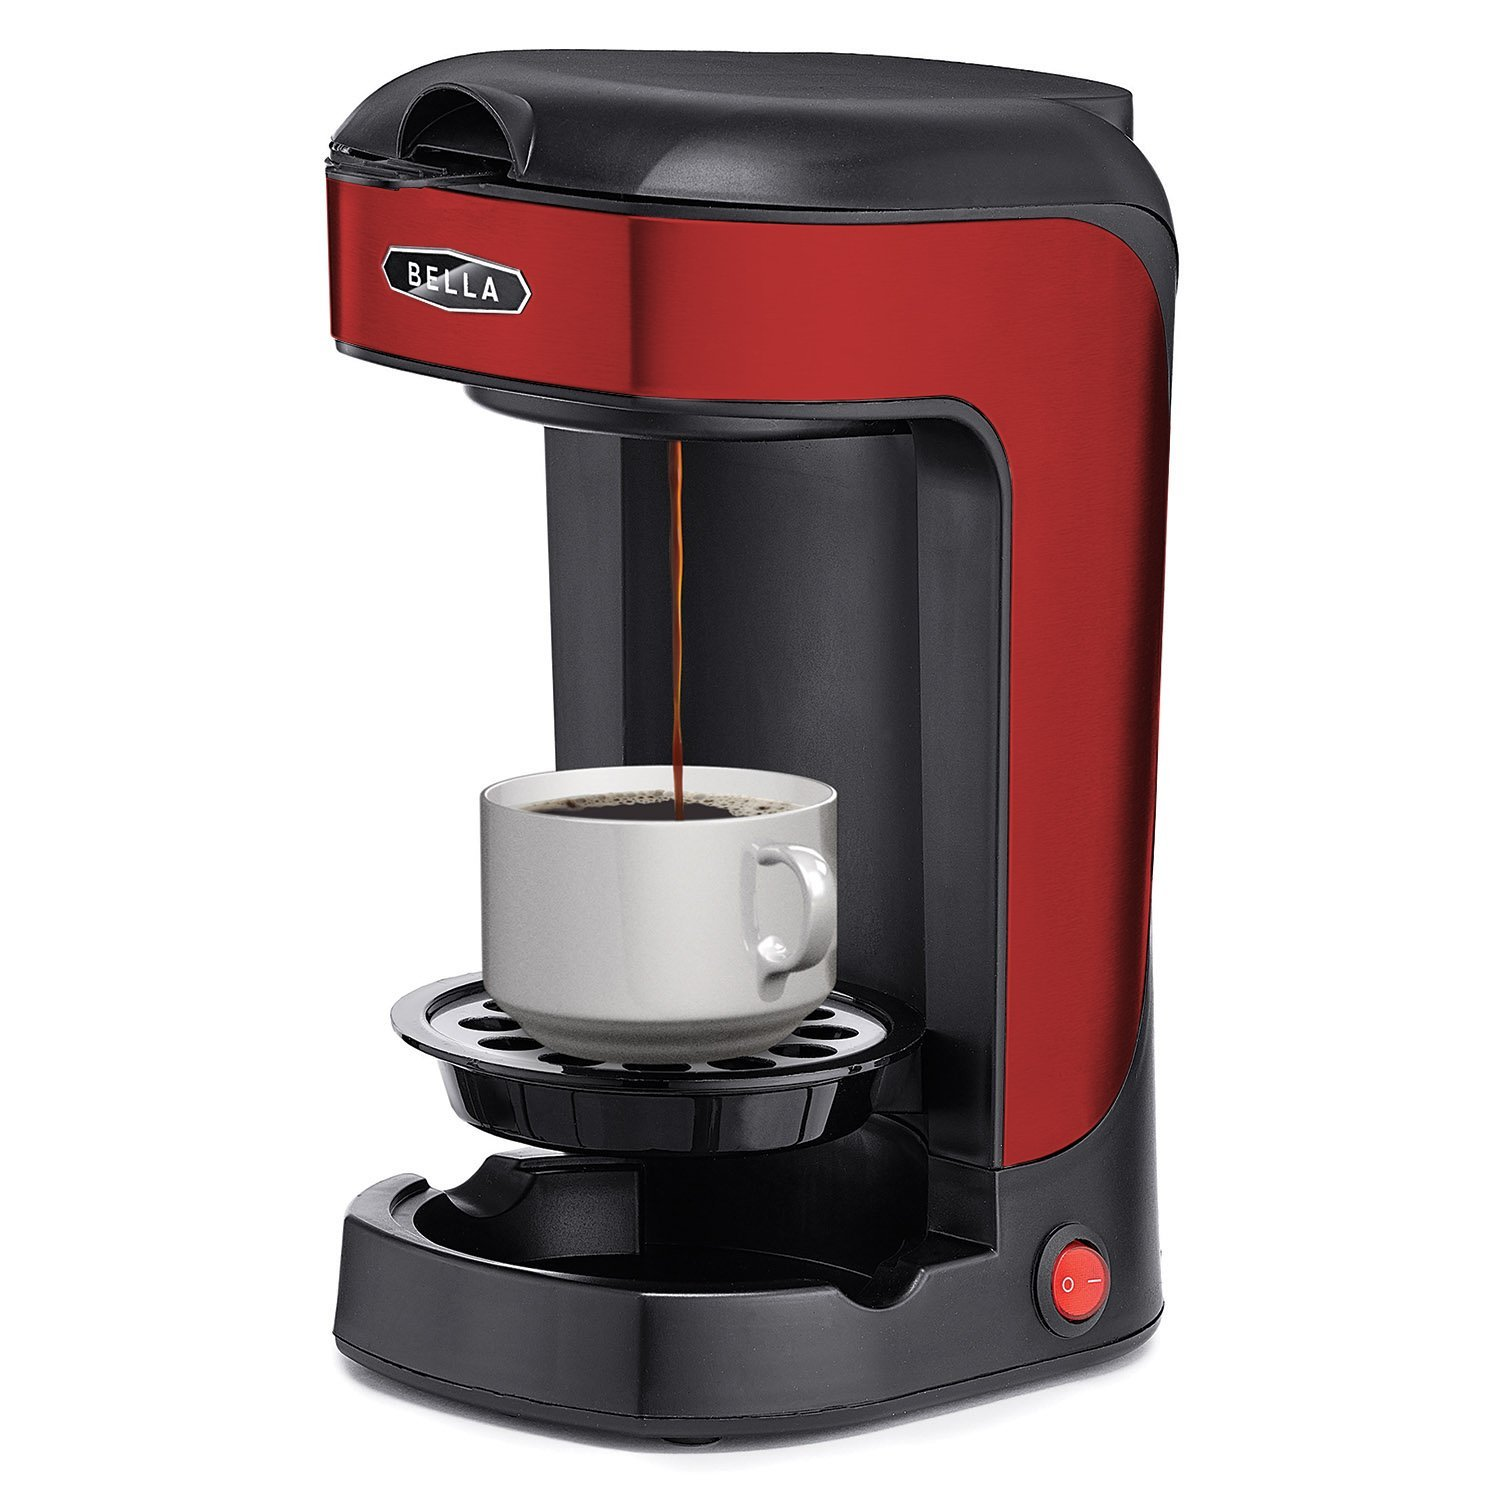 Coffee Maker How Many Scoops Per Cup : Bella One Scoop One Cup Coffee Maker Best Price - Bella One Scoop One Cup Coffee Maker Review